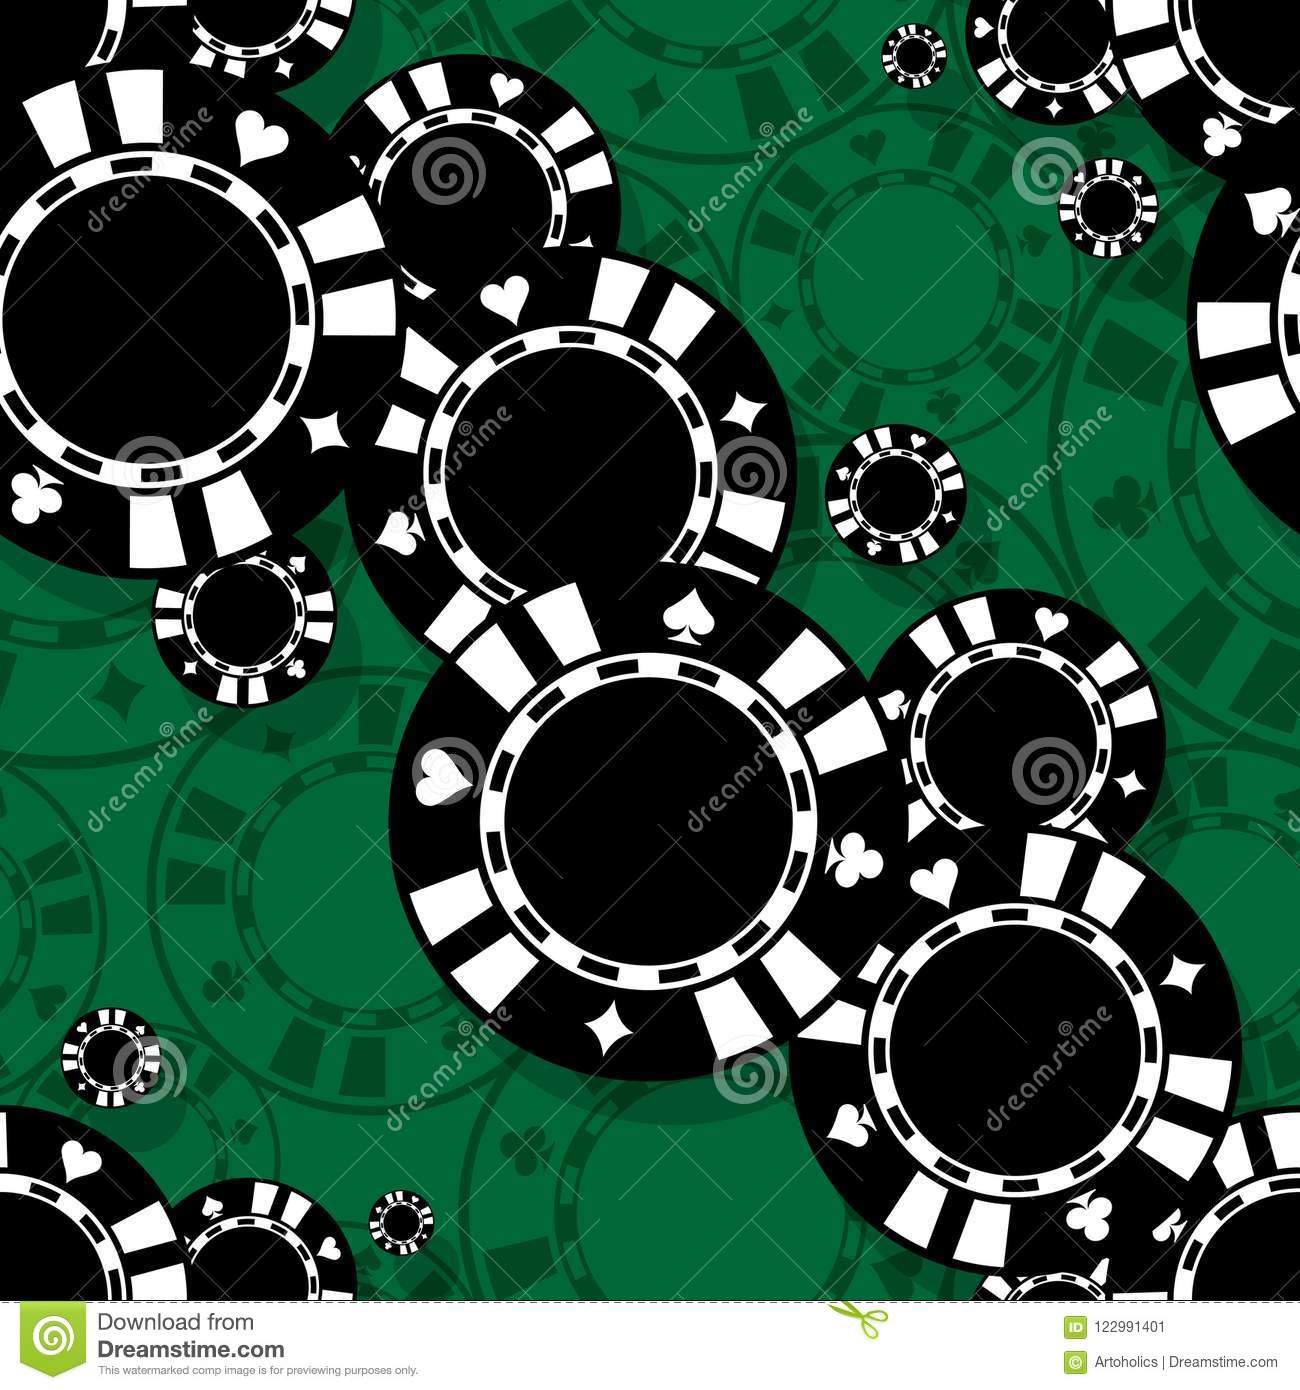 Poker Chip Wallpaper Posted By Samantha Peltier